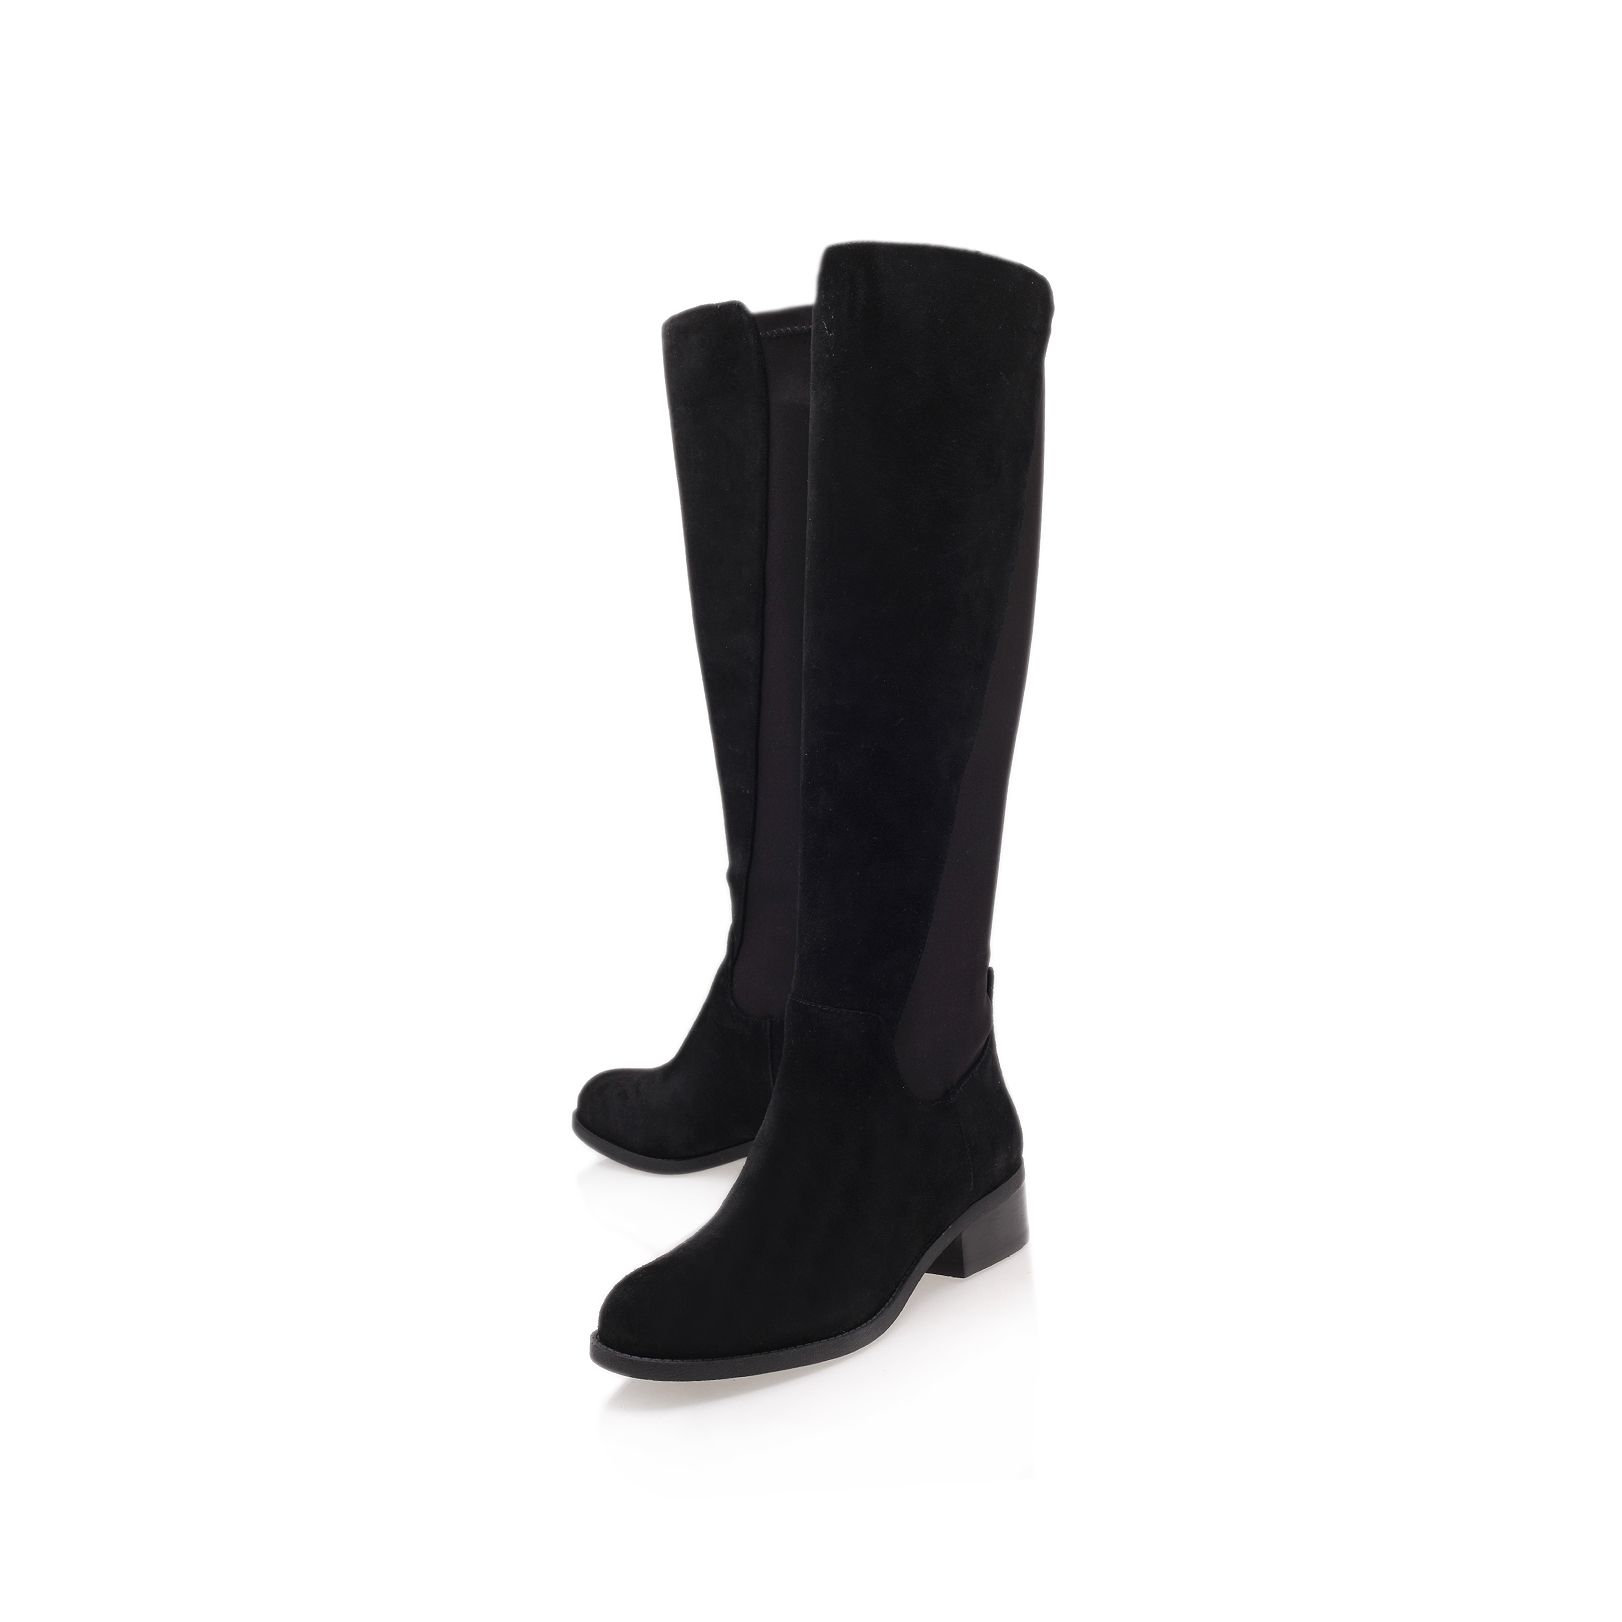 Partay flat knee high boots